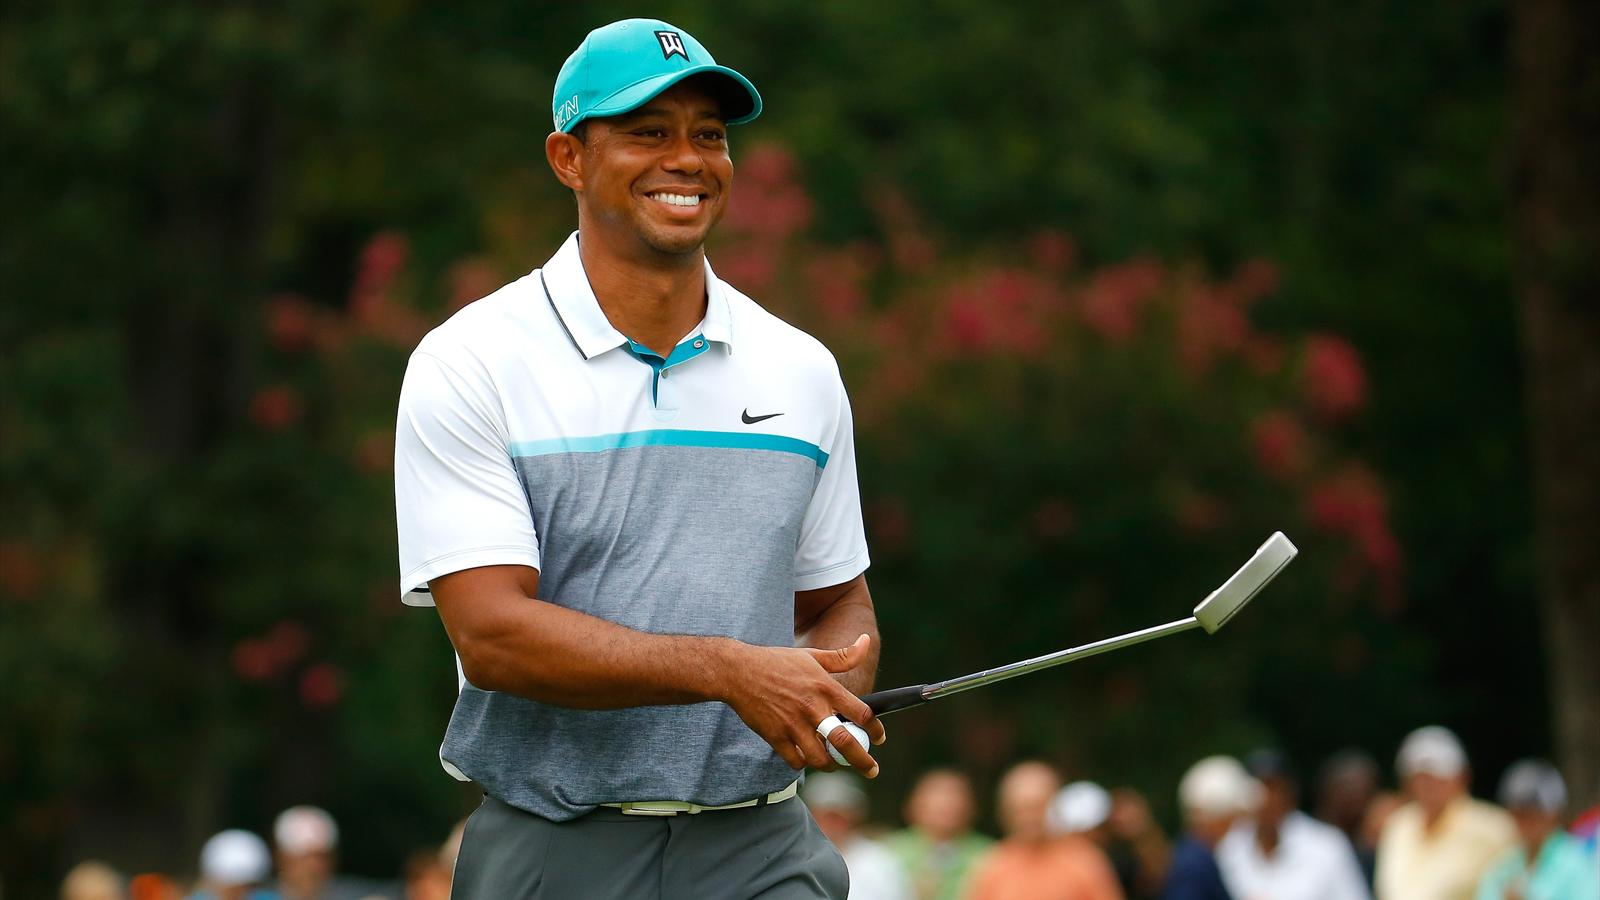 Tiger Woods has a chance of a victory.